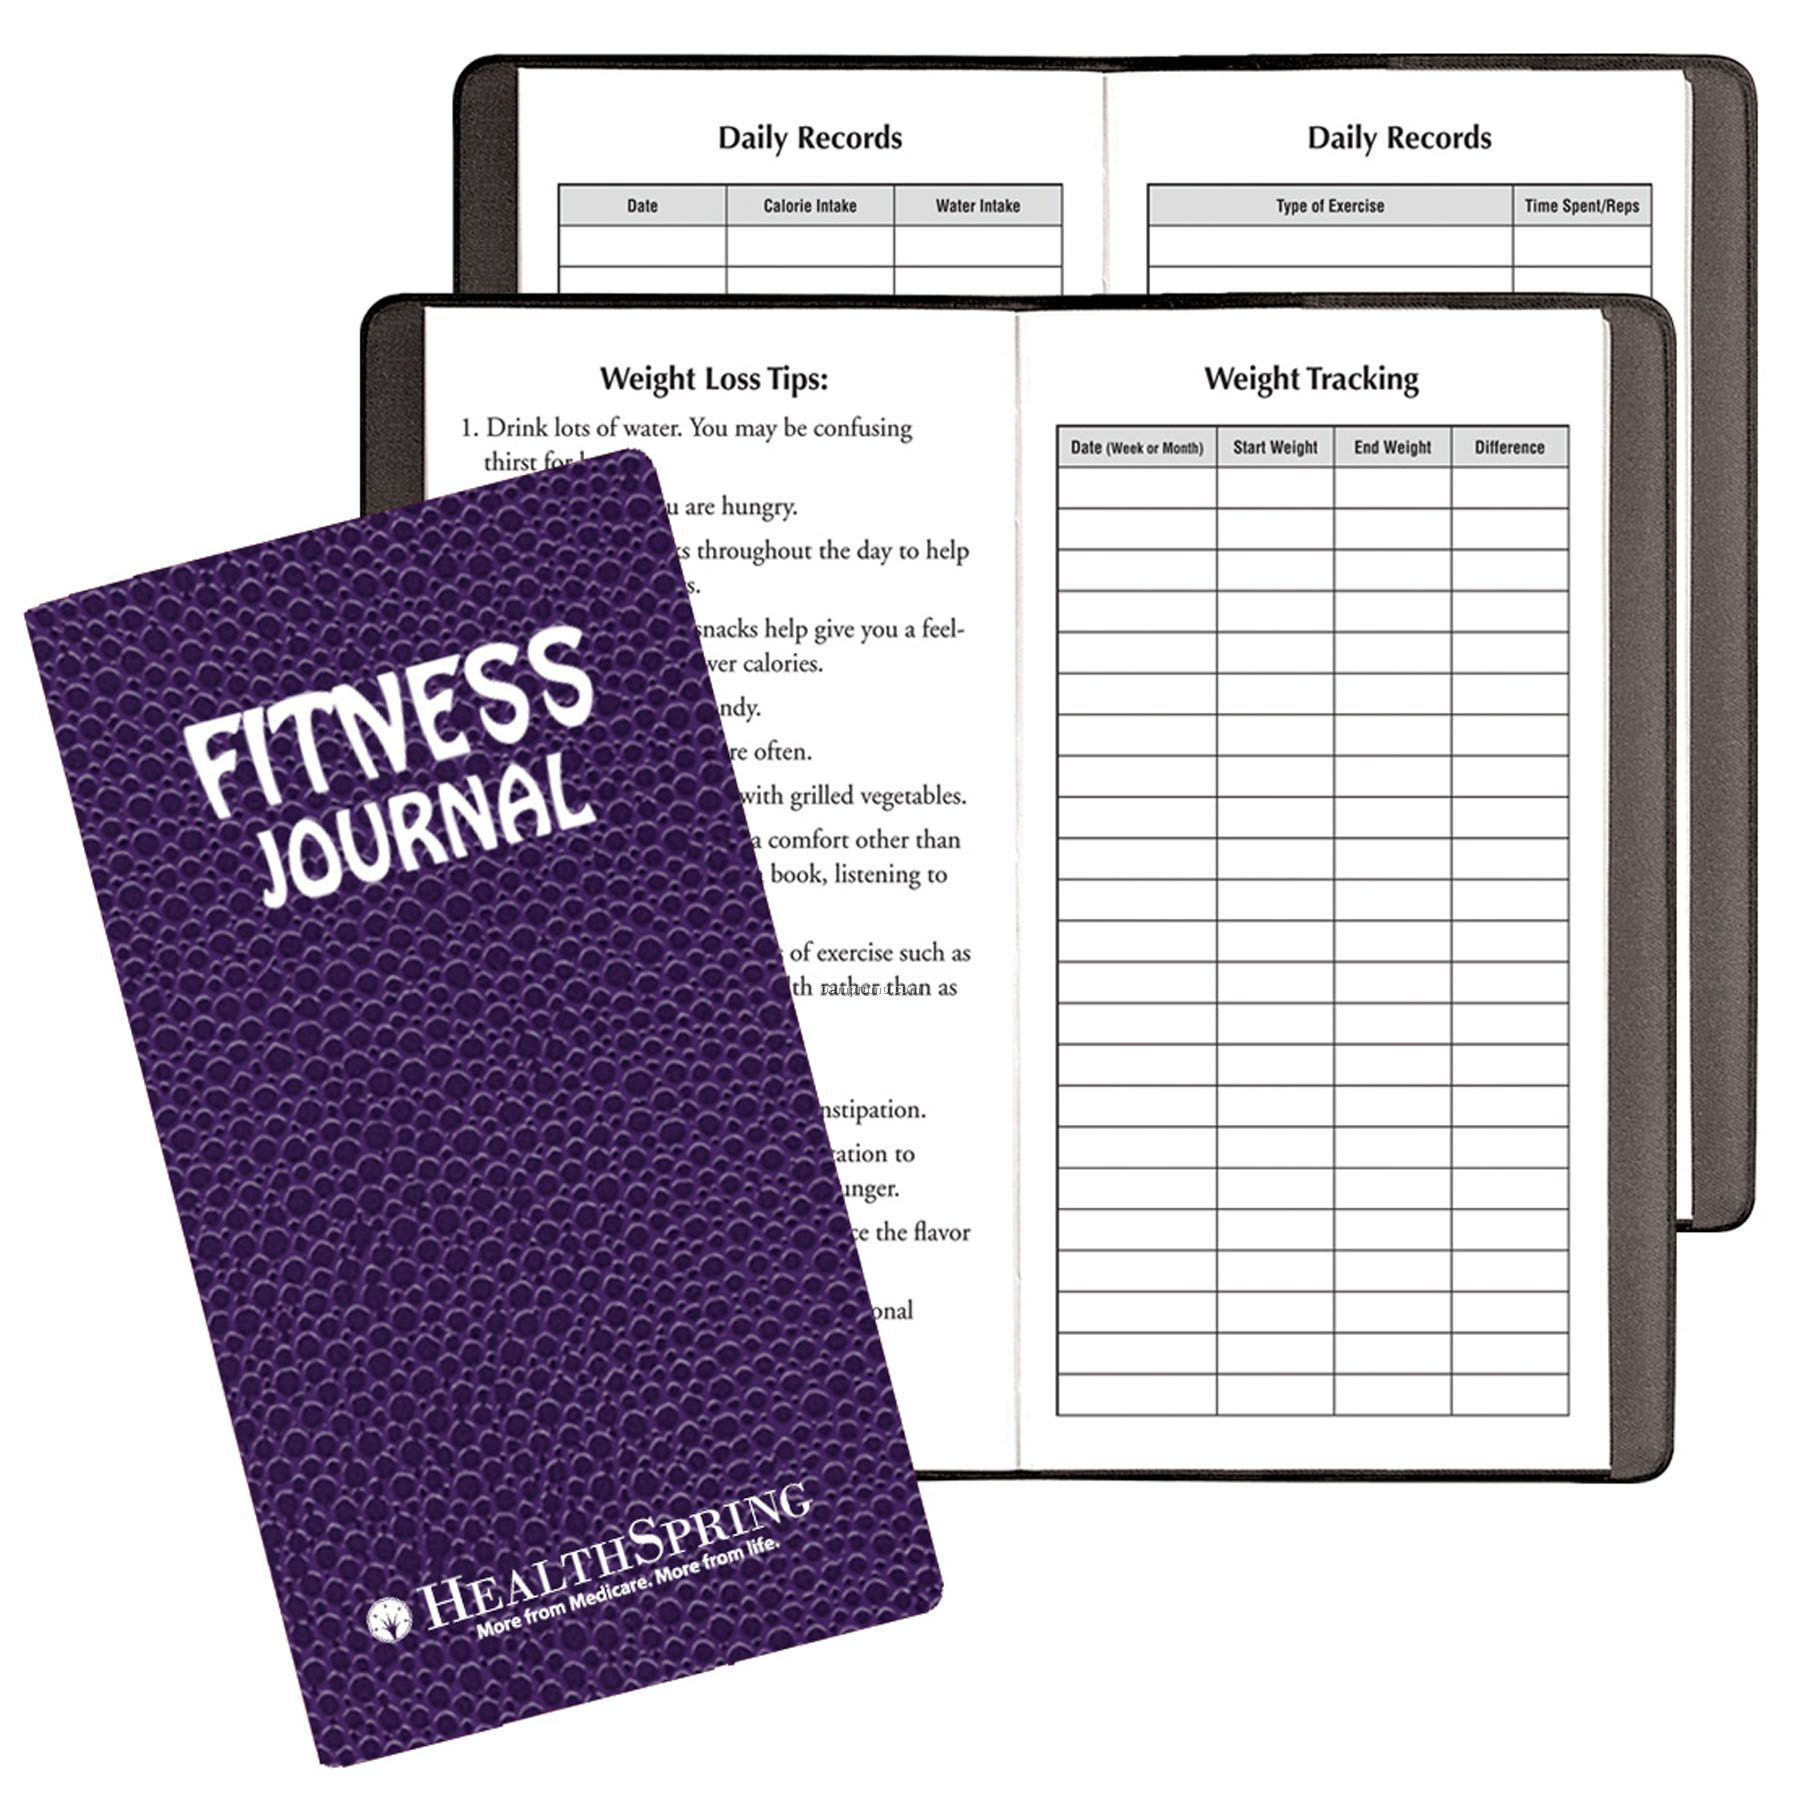 Fitness Journal/Cobblestone Cover